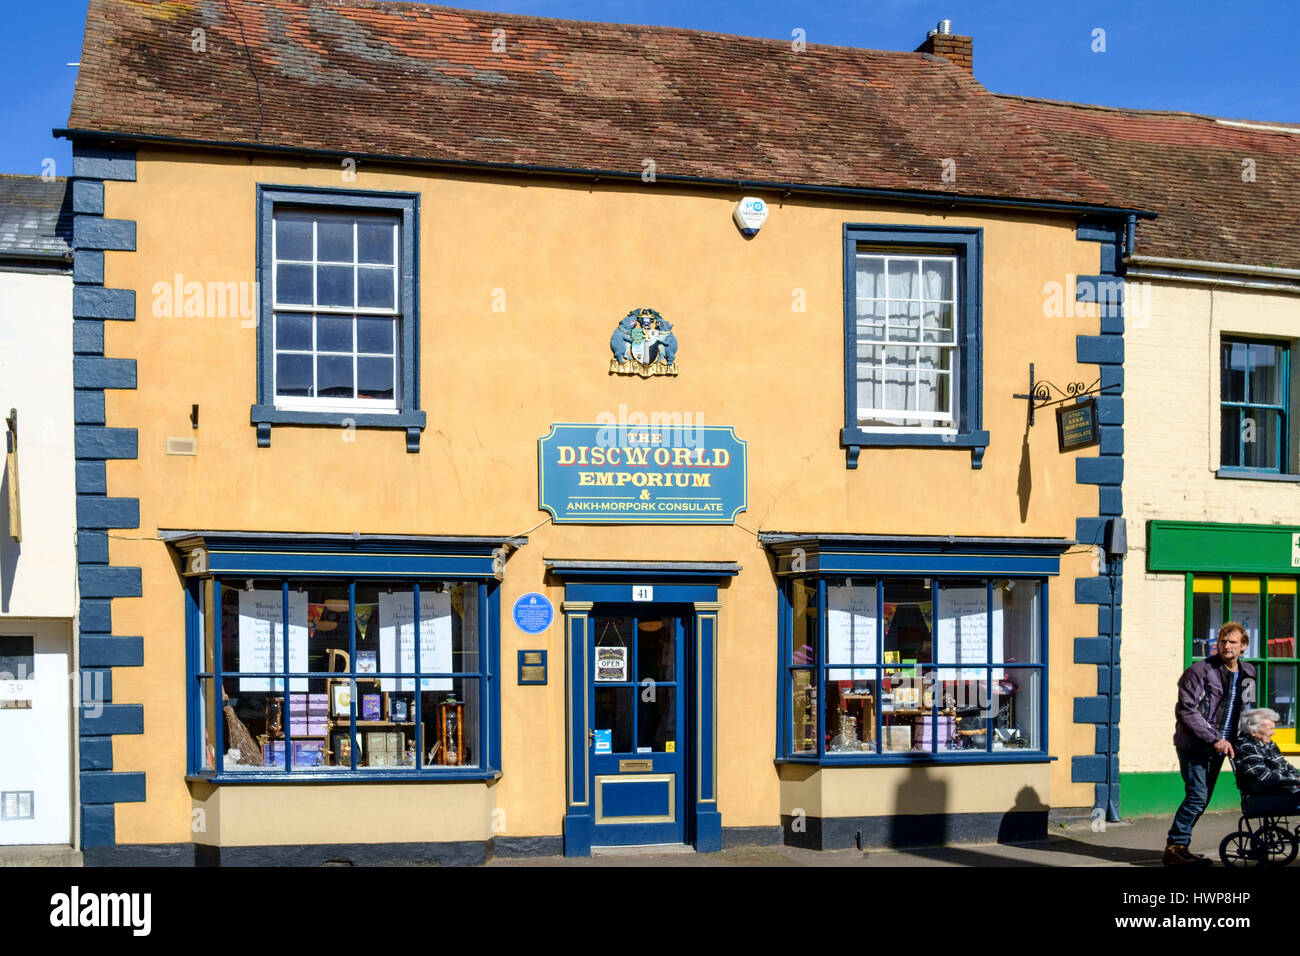 Views of Wincanton Town in somerset England UK. Cunning Artificer Discworld Shop - Stock Image